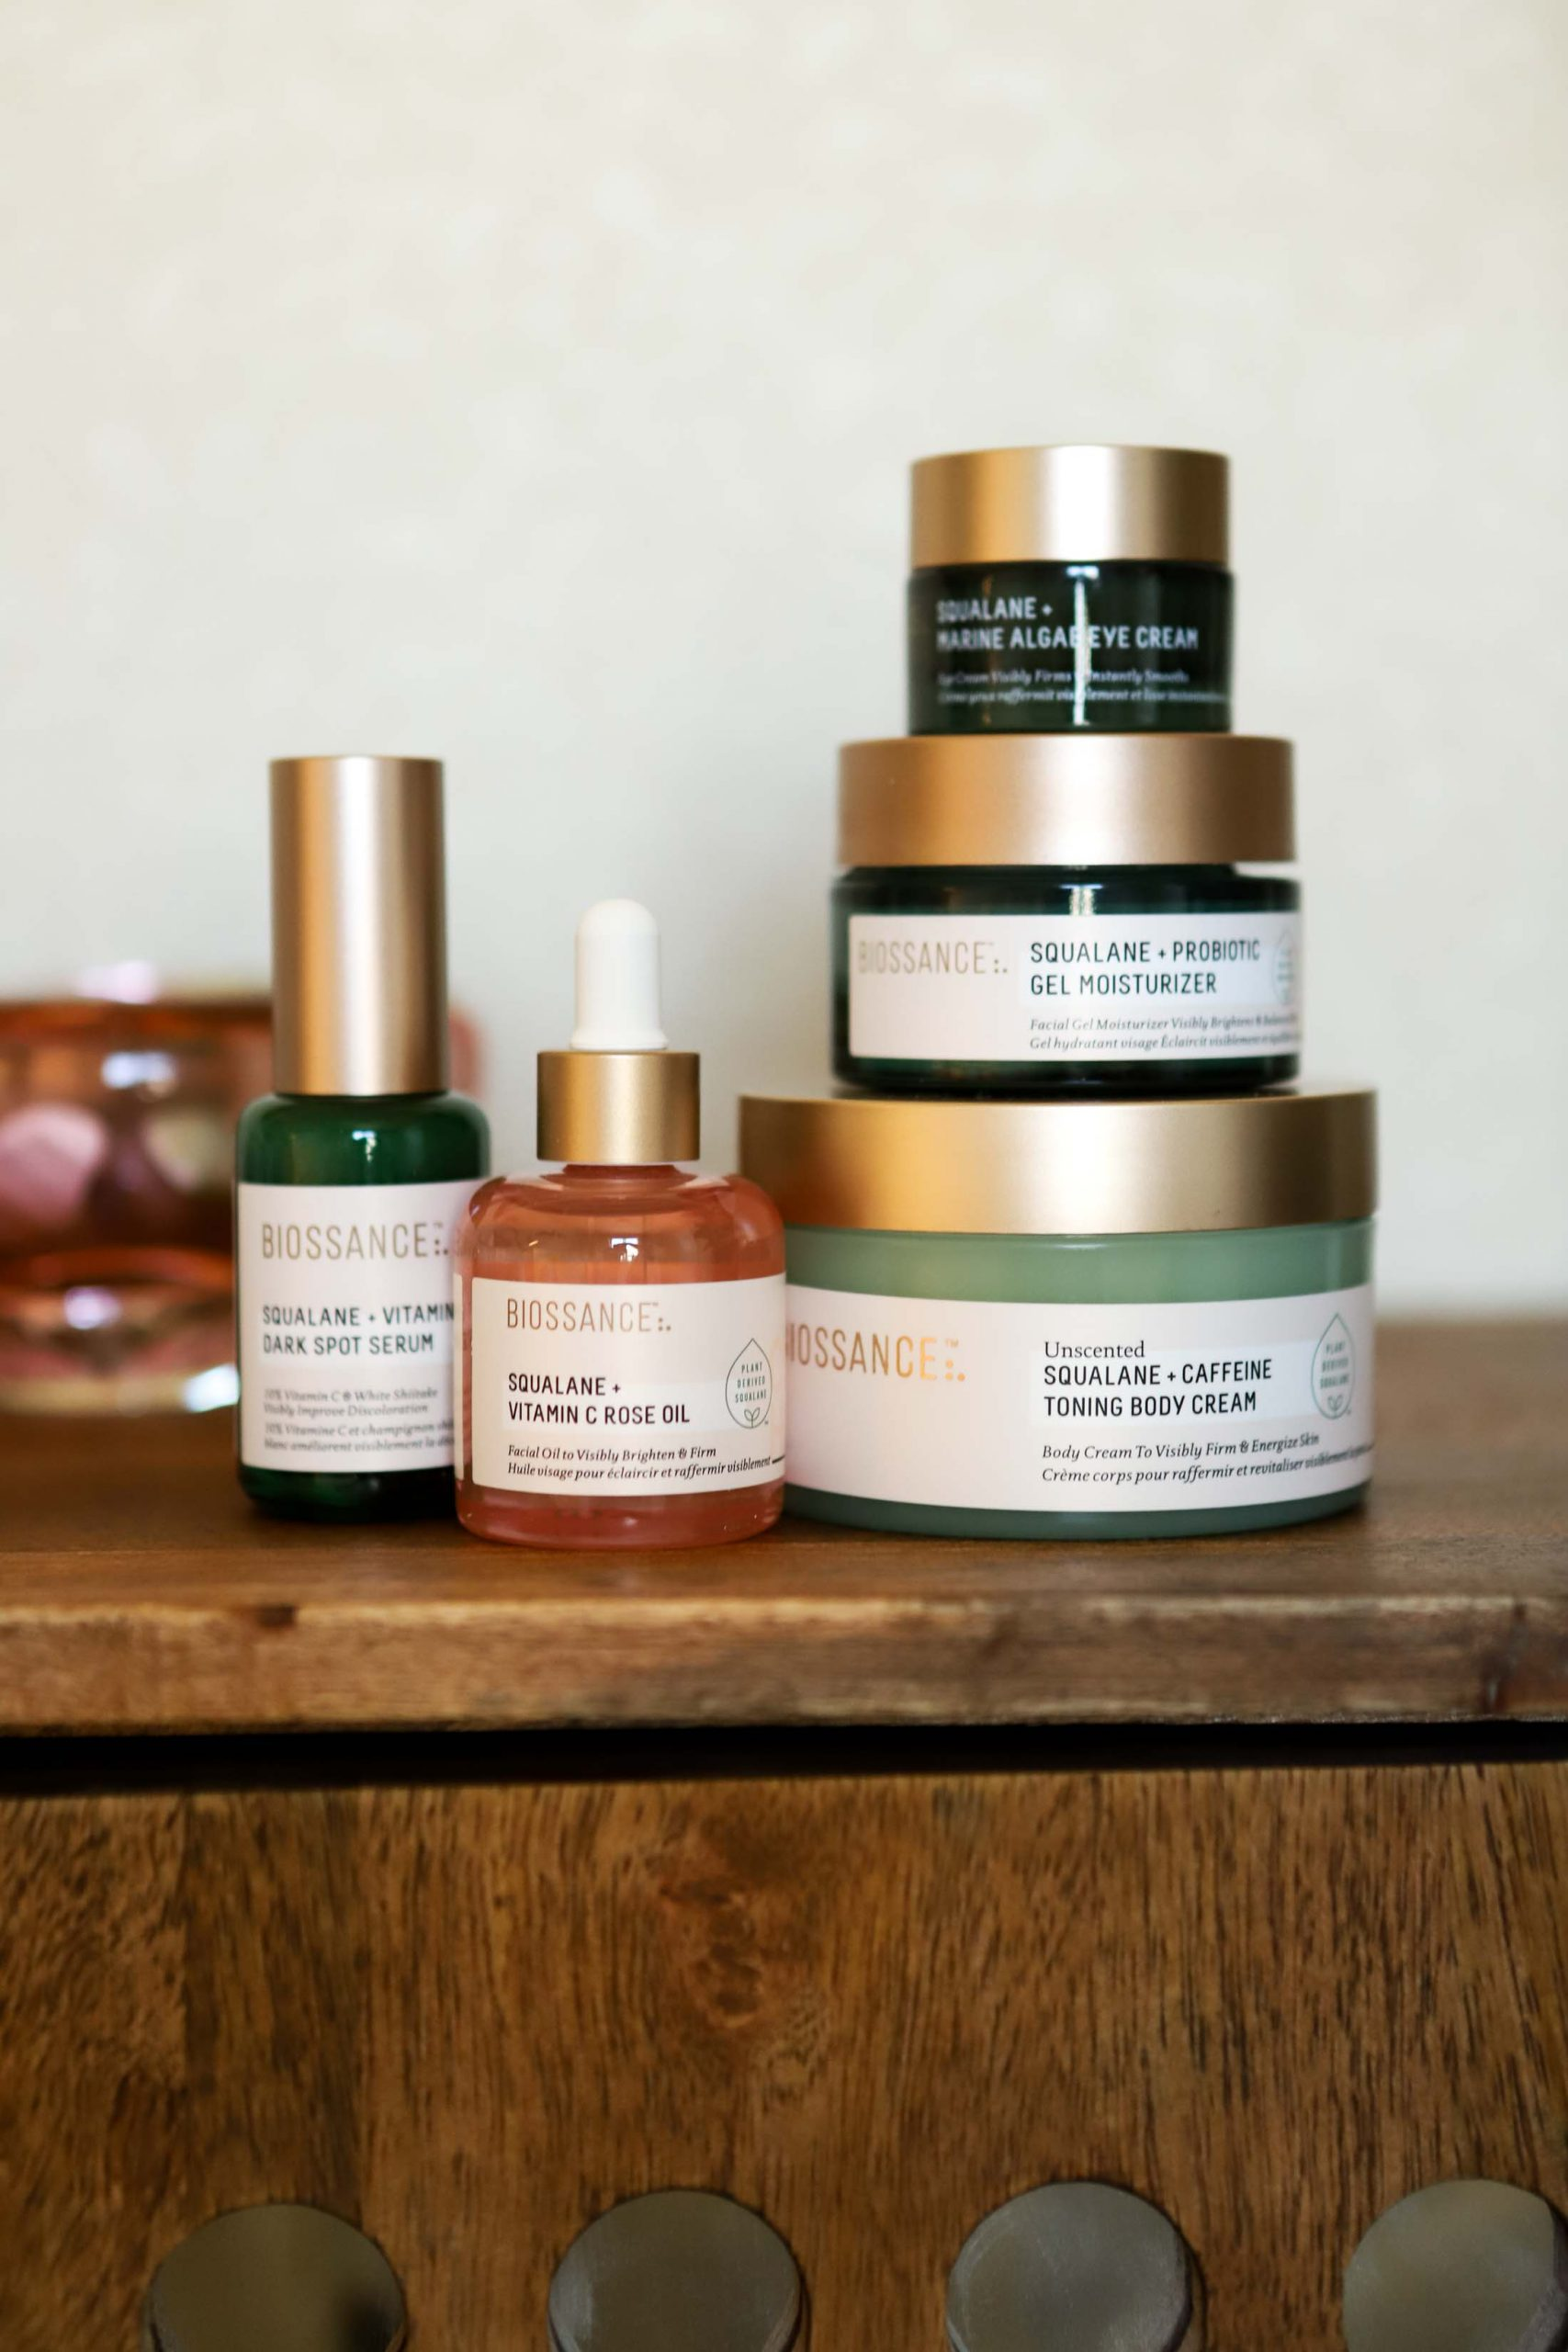 Biossance is a TME favorite, so I'm thrilled to get my hands on some. I love a good clean skincare moment & these products will 100% work in my daily rotation.